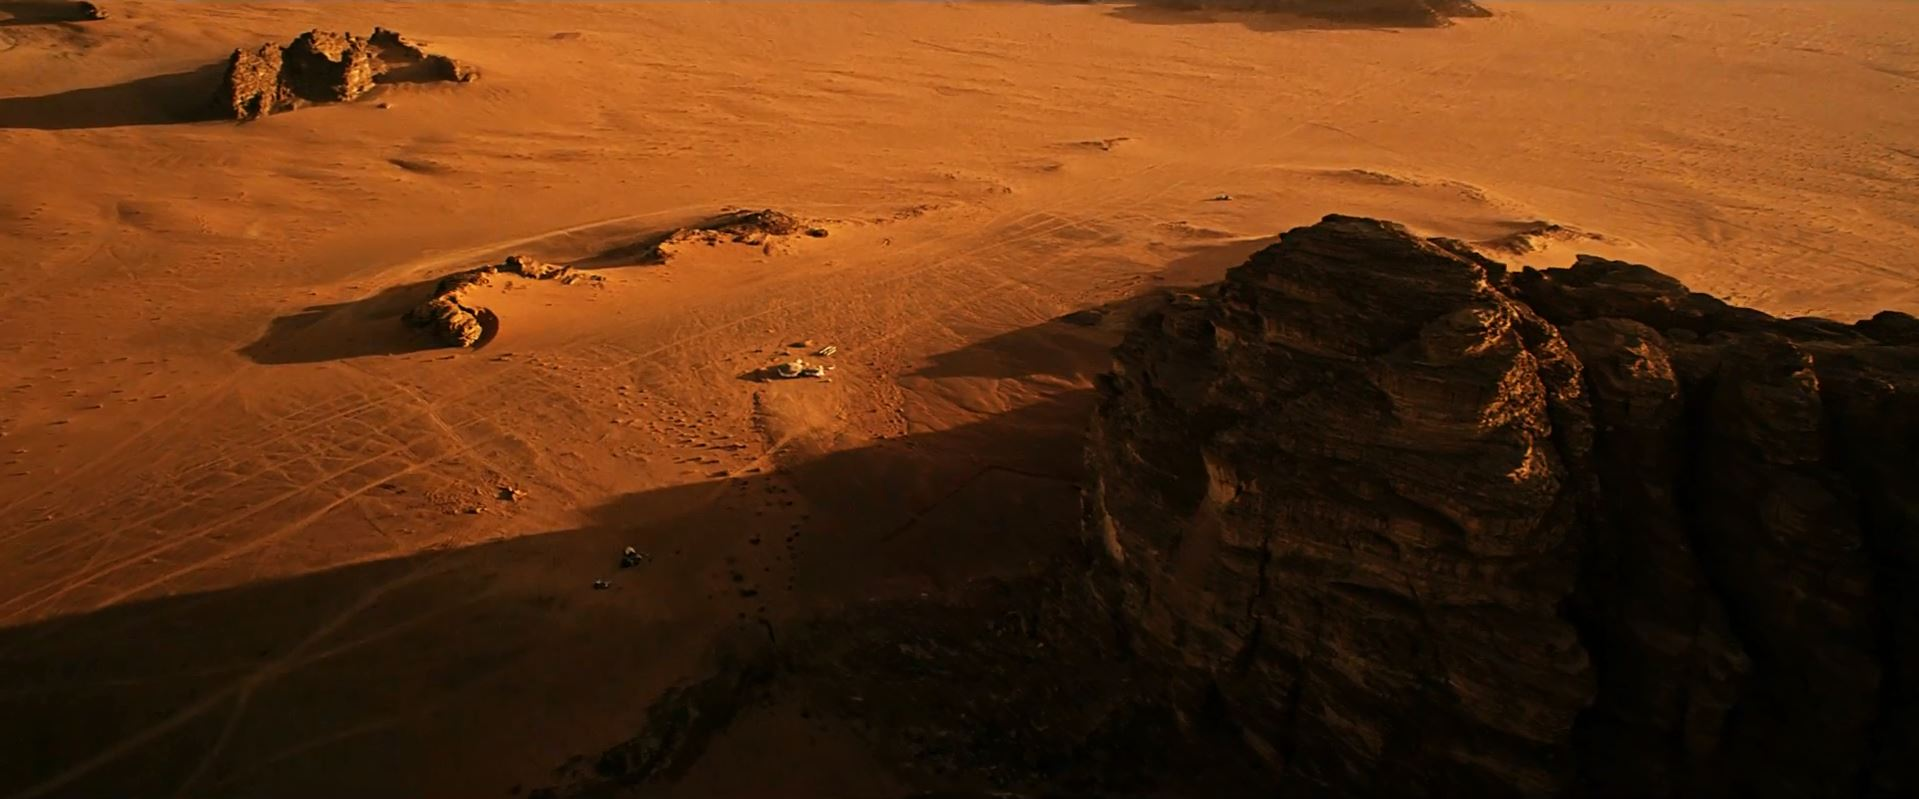 The Martian base camp